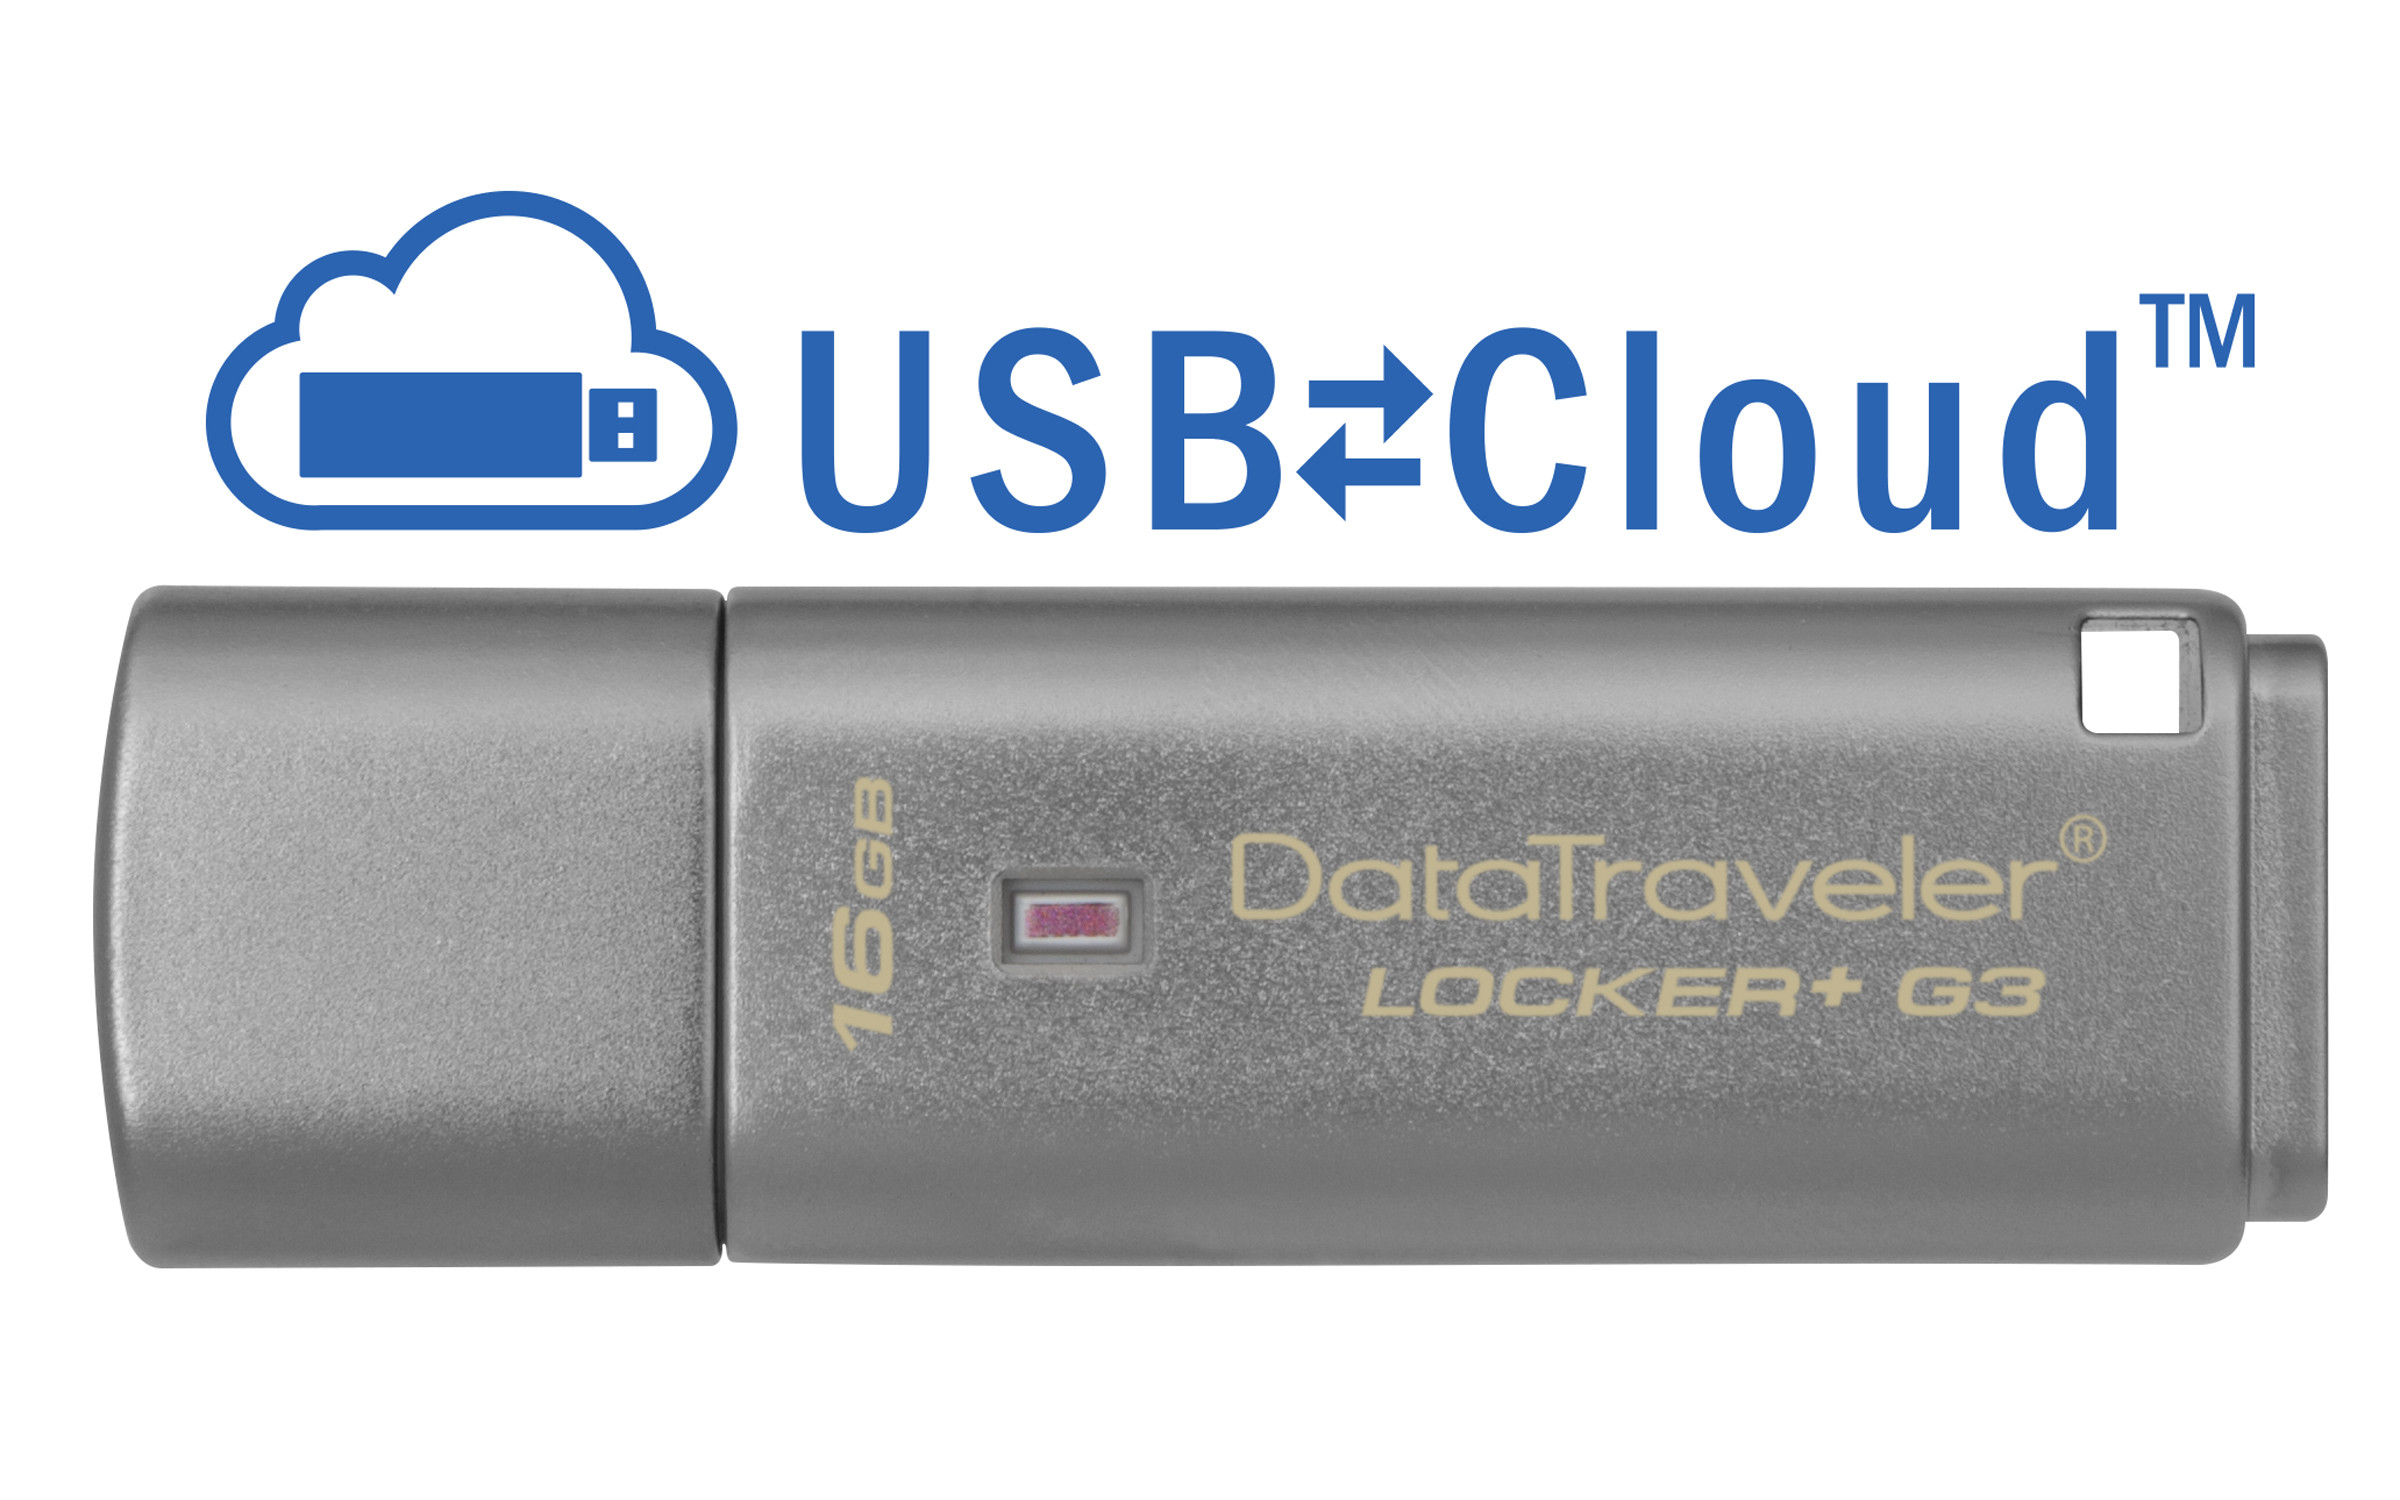 Kingston - Digital Media Product 16gb Usb3.0 Dt Locker               G3 W/automatic Data Security        Dtlpg3/16gb